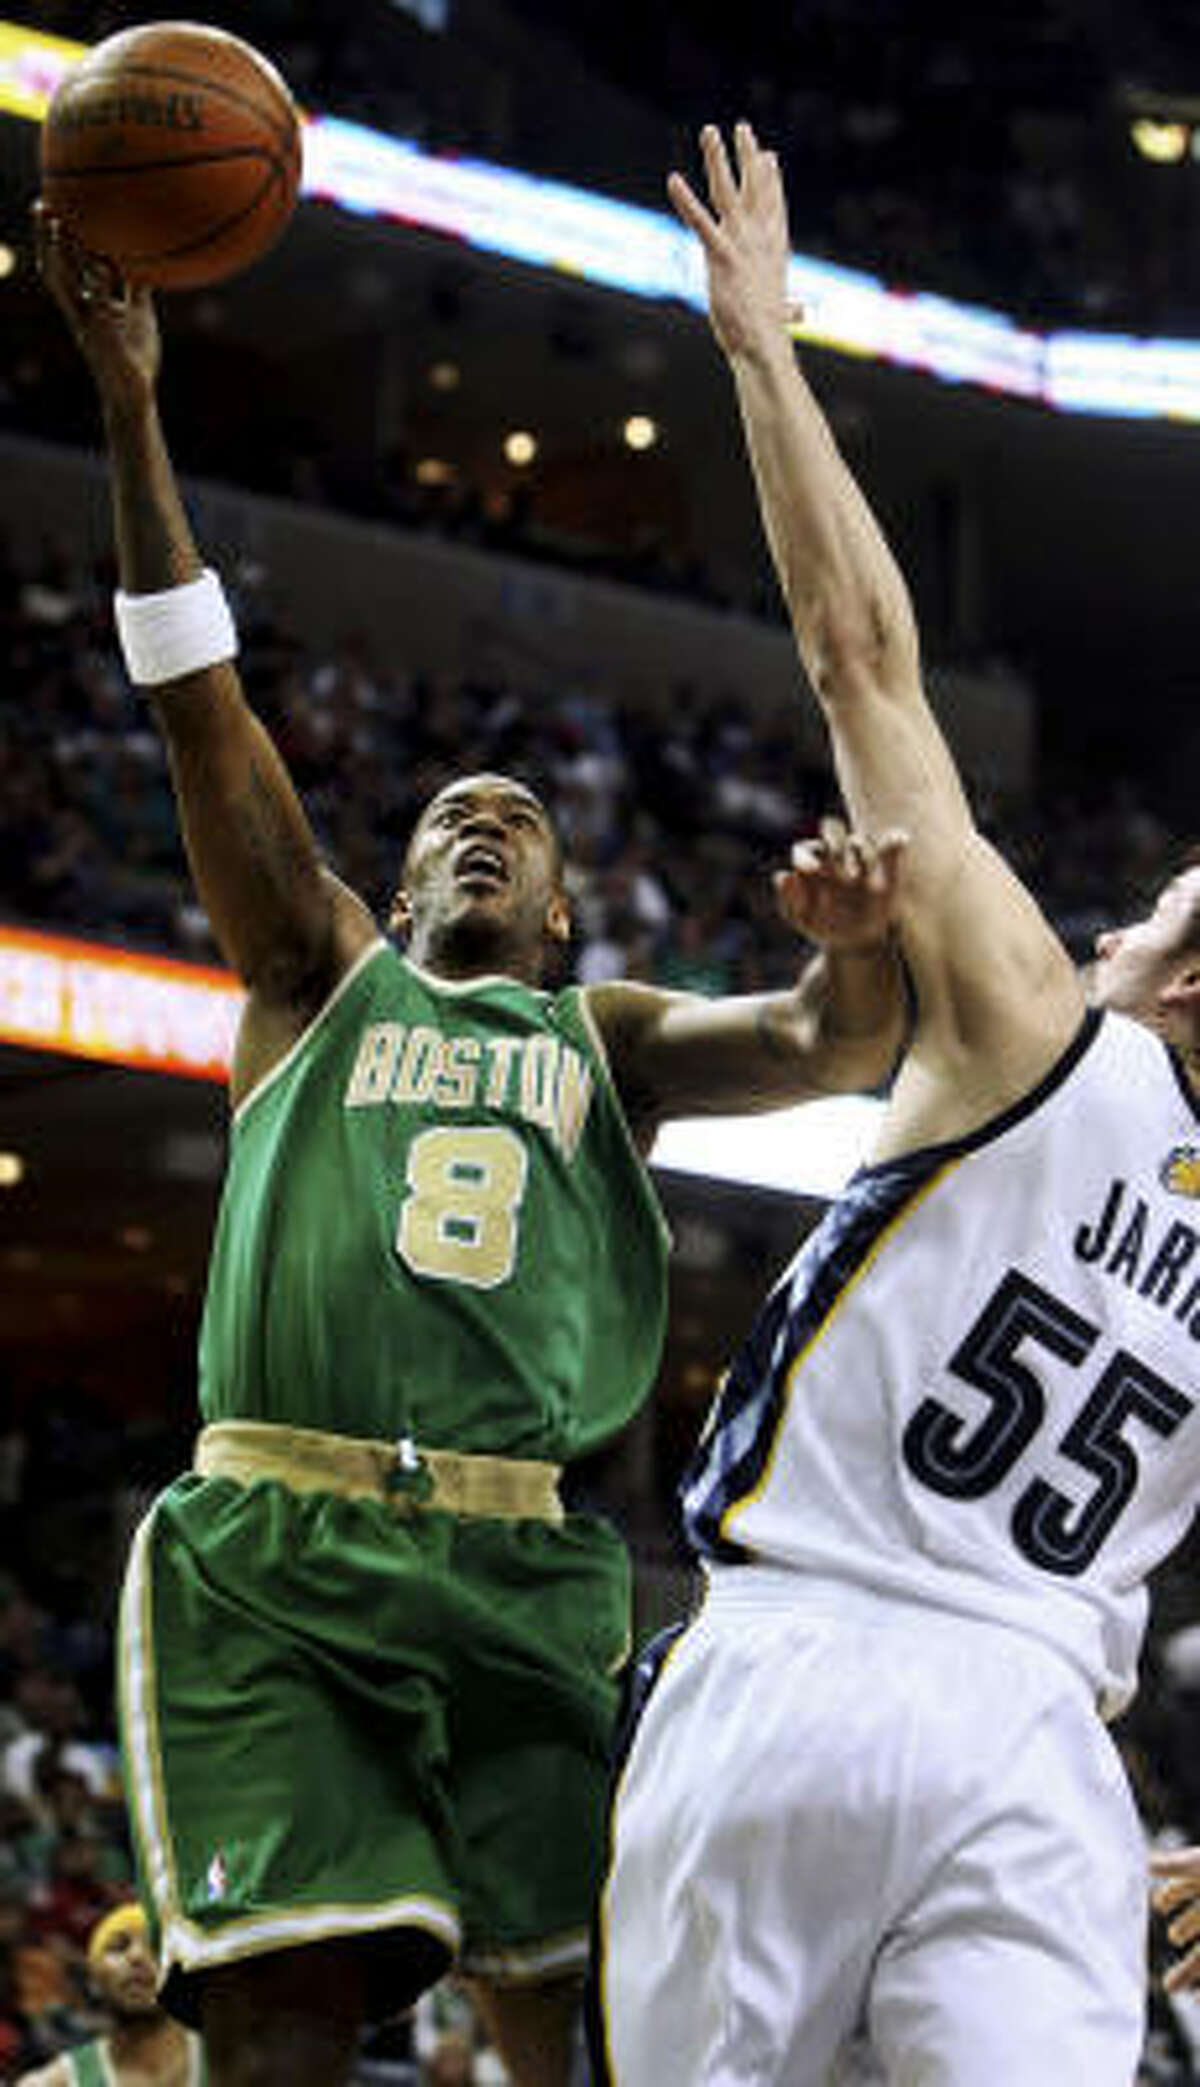 3 - BOSTON CELTICS - (Last rank: 4) - 53-18 - They finally got KG back in the lineup. But the Celtics seem to be missing that touch of swagger that made them a juggernaut a year ago. The win in San Antonio on Friday night may have served notice that they won't give up the crown easily.